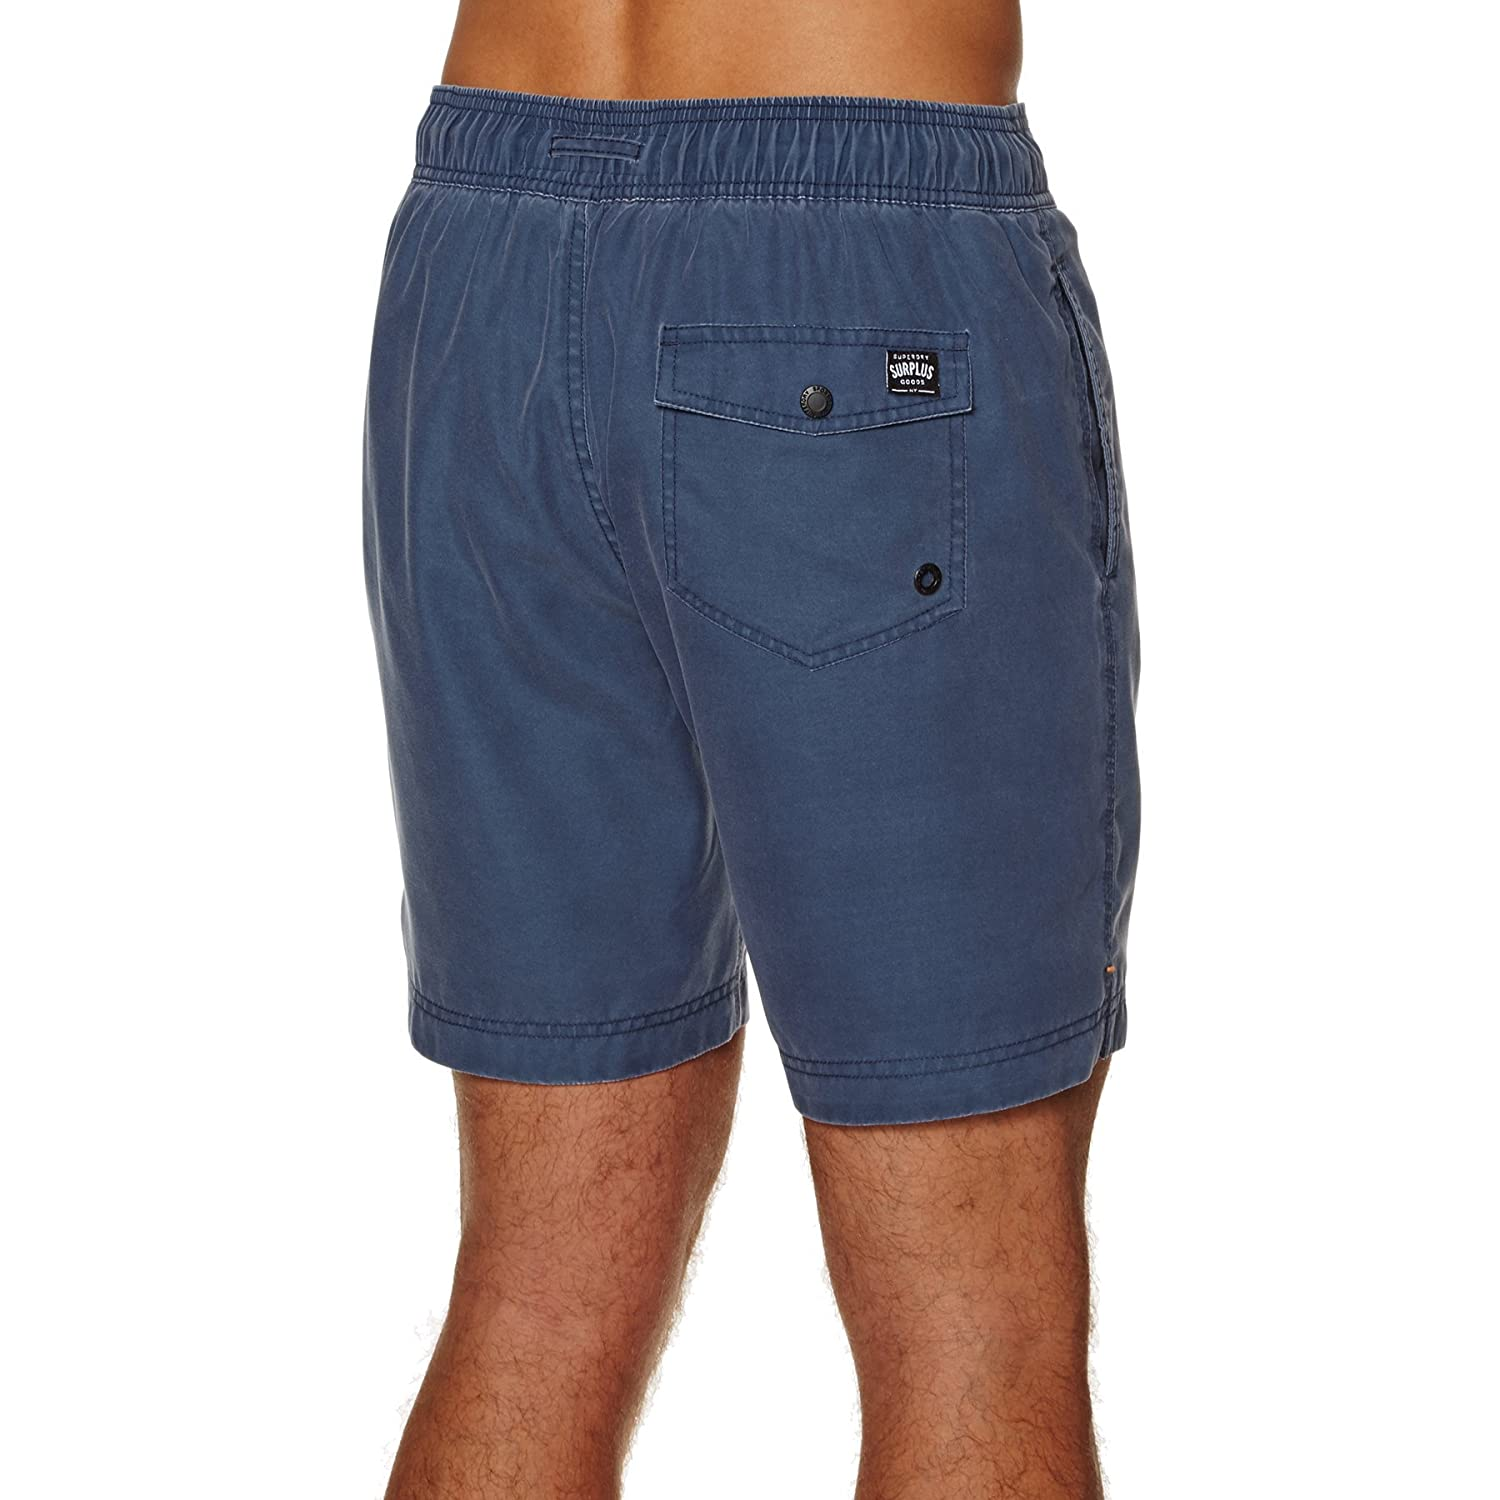 33b3768e8f56d Superdry Surplus Goods Swim Shorts 36 inch Tropical Navy: Amazon.co.uk:  Clothing